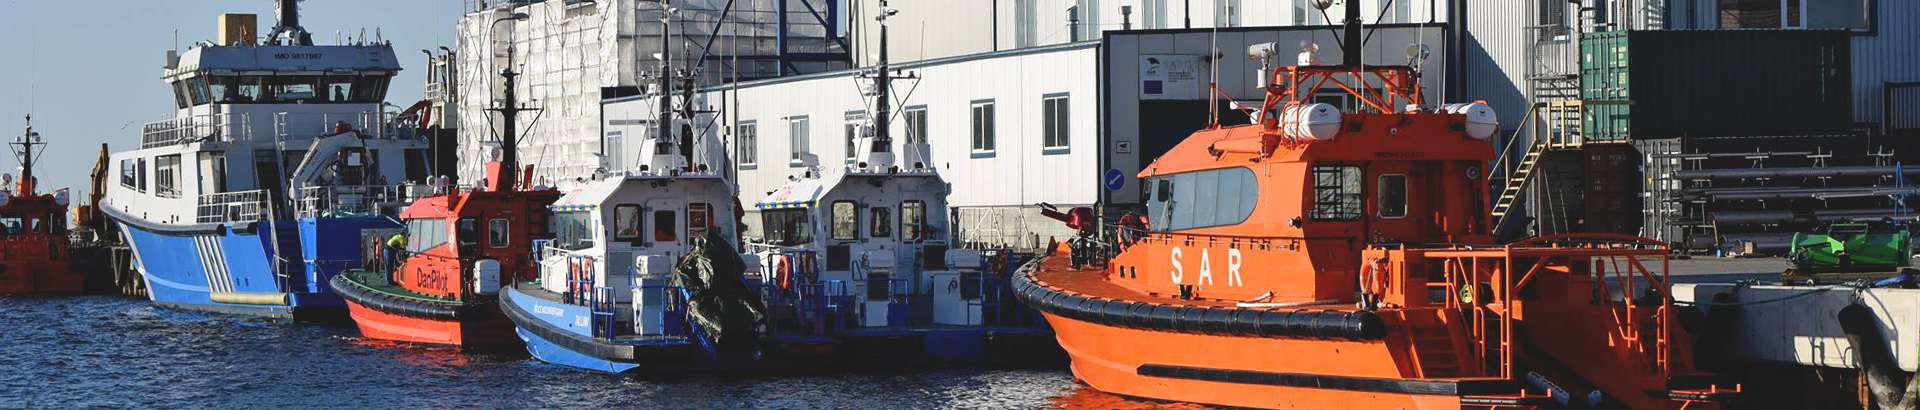 10657801_baltic-workboats-as_89107183_xl.jpg